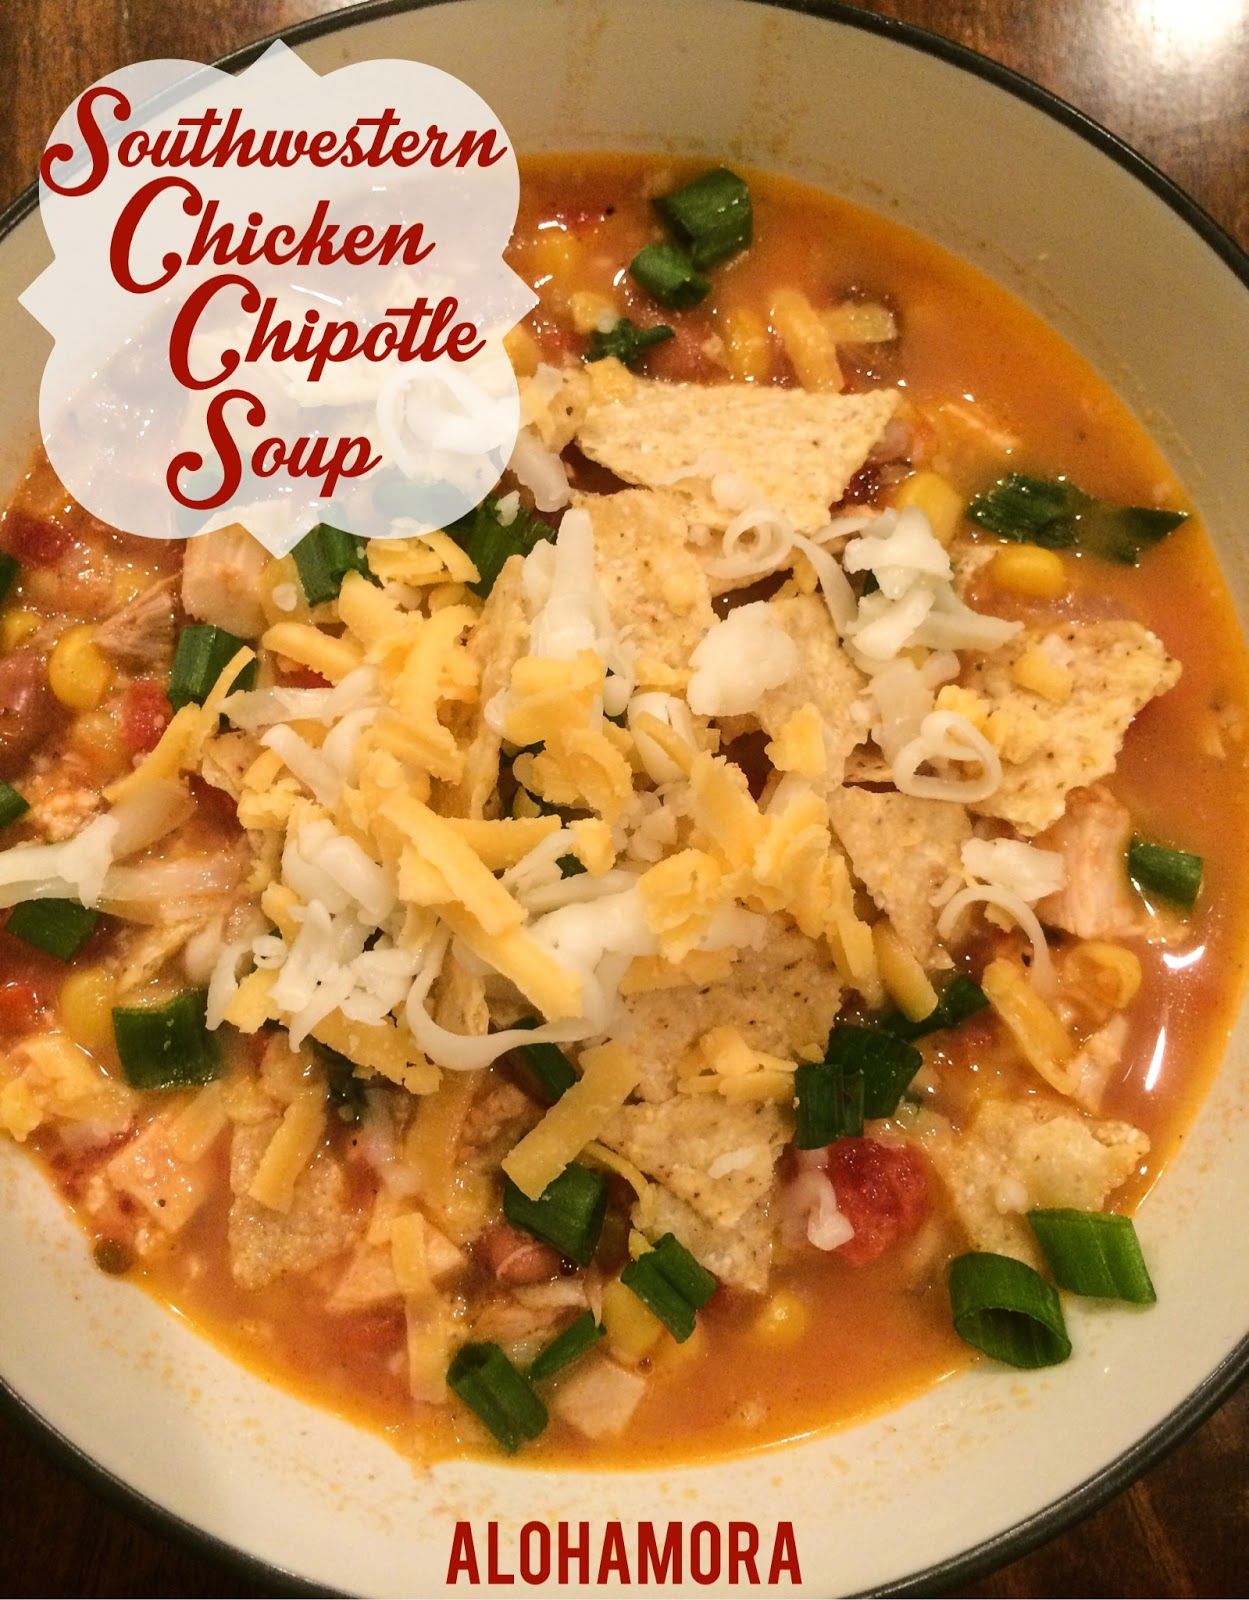 Southwestern Chicken Chipotle Soup... healthy, clean eating soup that is absolutely delicious!  Quick soup that's perfect for a week night meal.  Alohamora Open a Book http://www.alohamoraopenabook.blogspot.com/